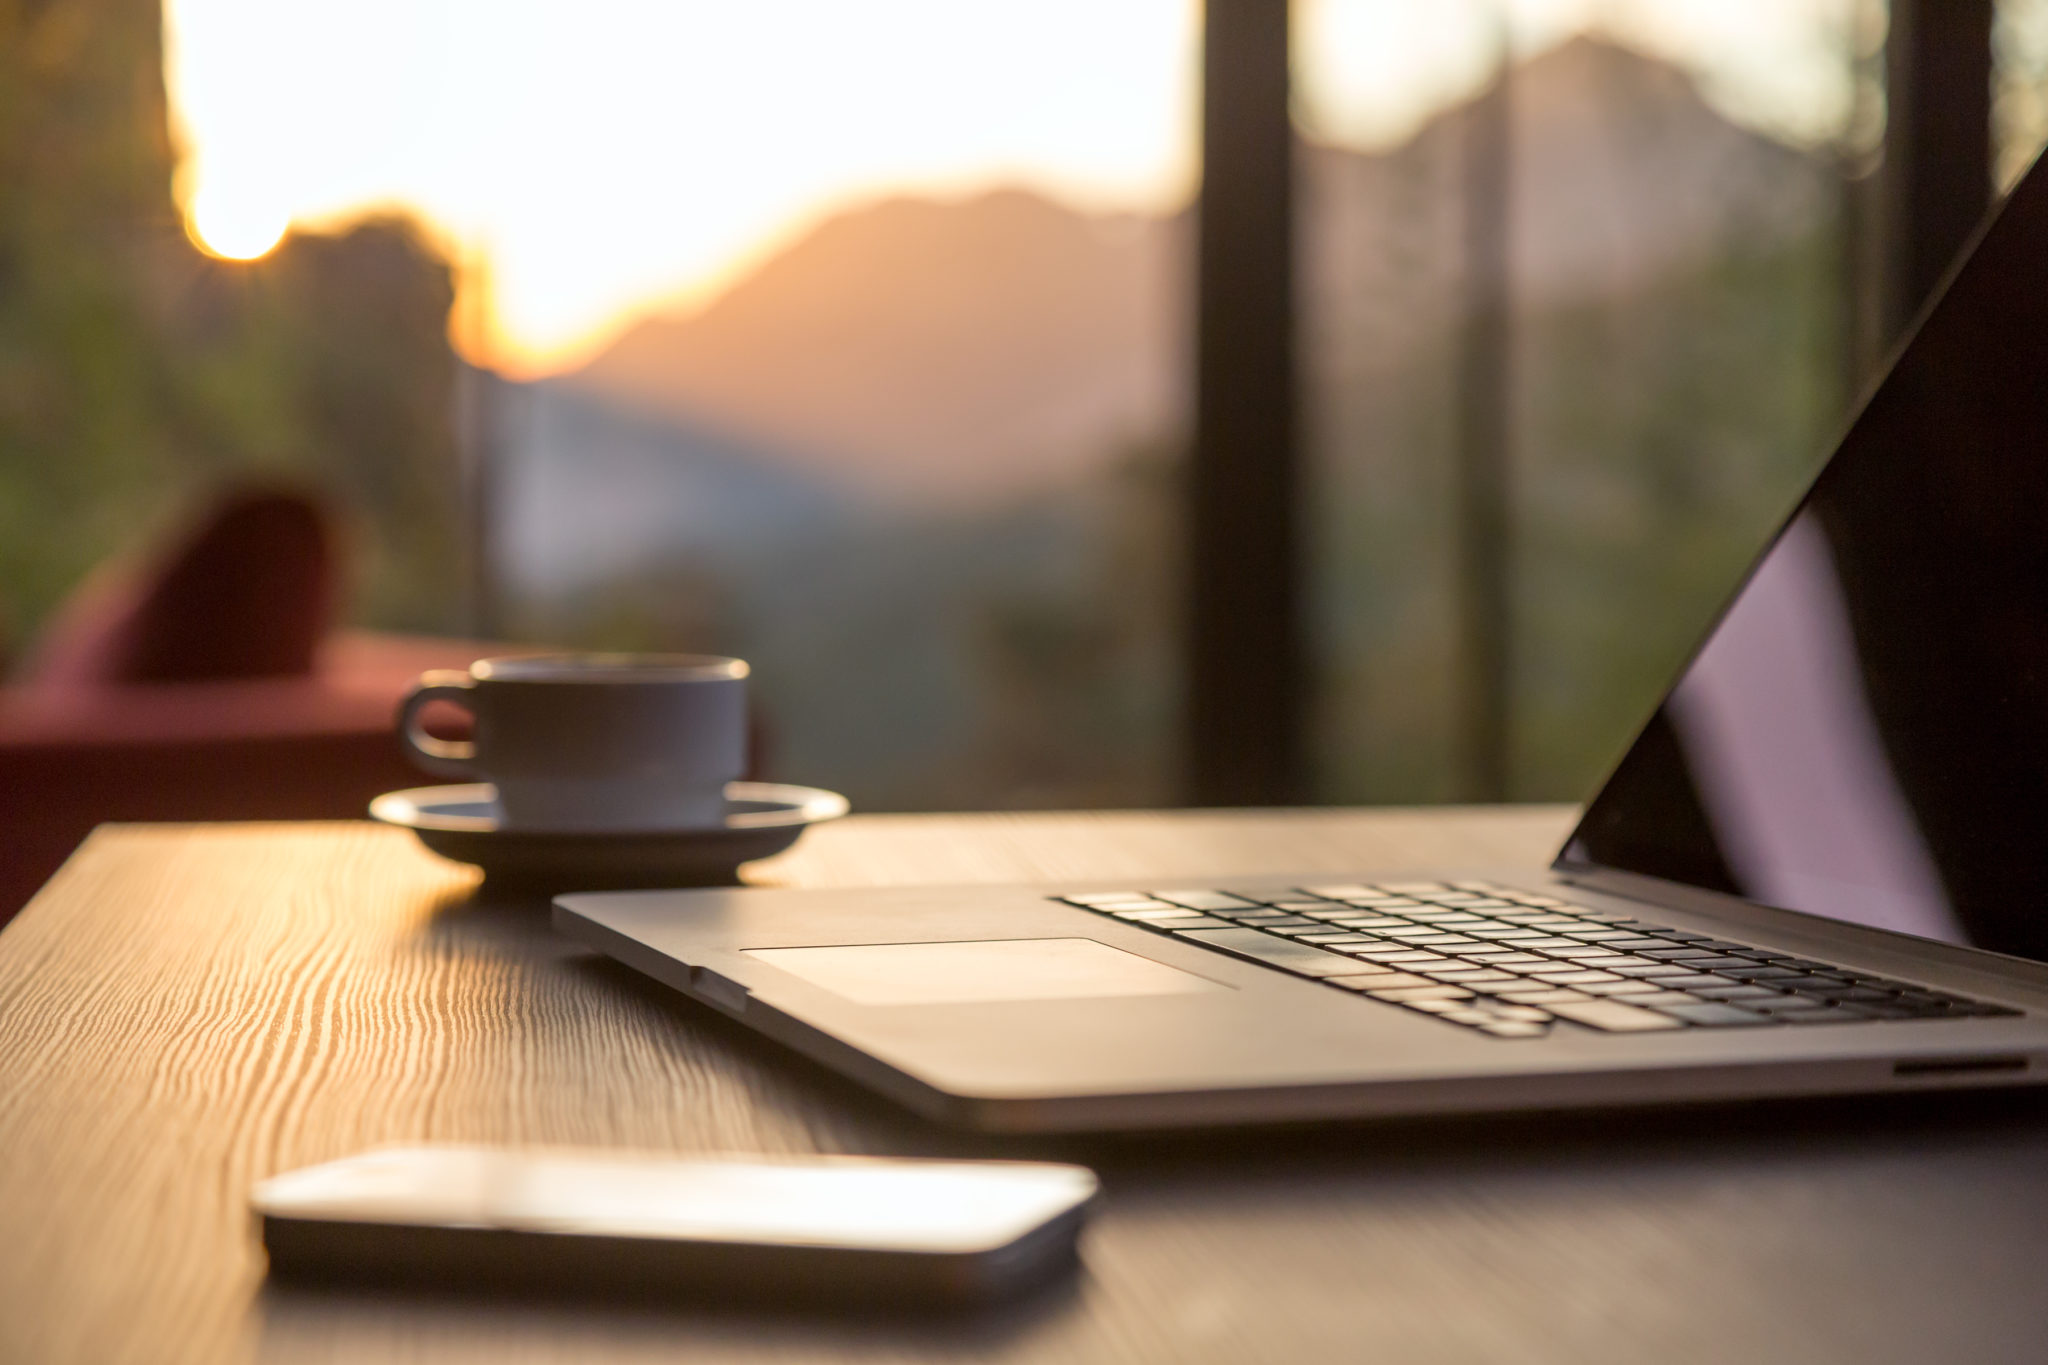 Keeping in Touch with Remote Users – Microsoft Office 365 Teams Helps to Keep Them Connected to the Office with Video Conferencing and Screen Sharing